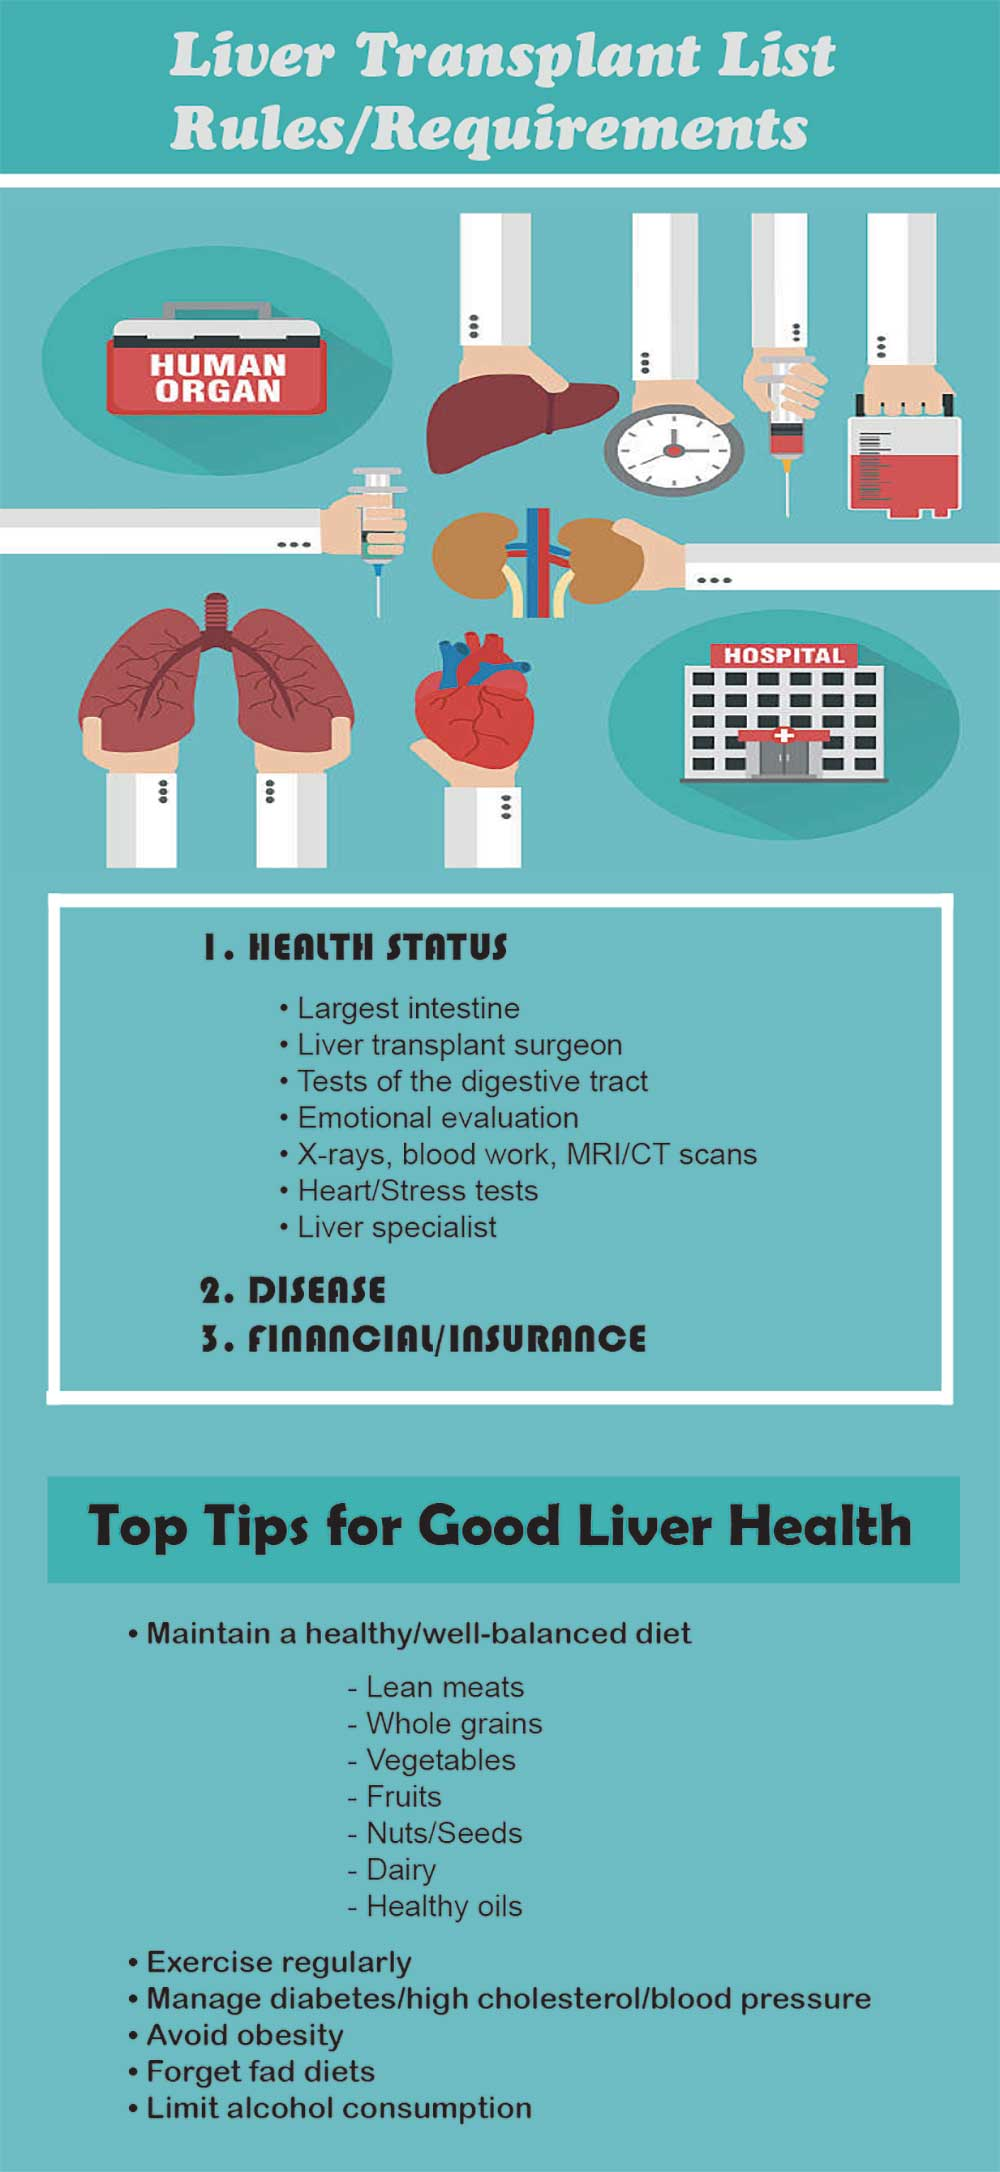 Liver Transplant List: Rules/Requirements